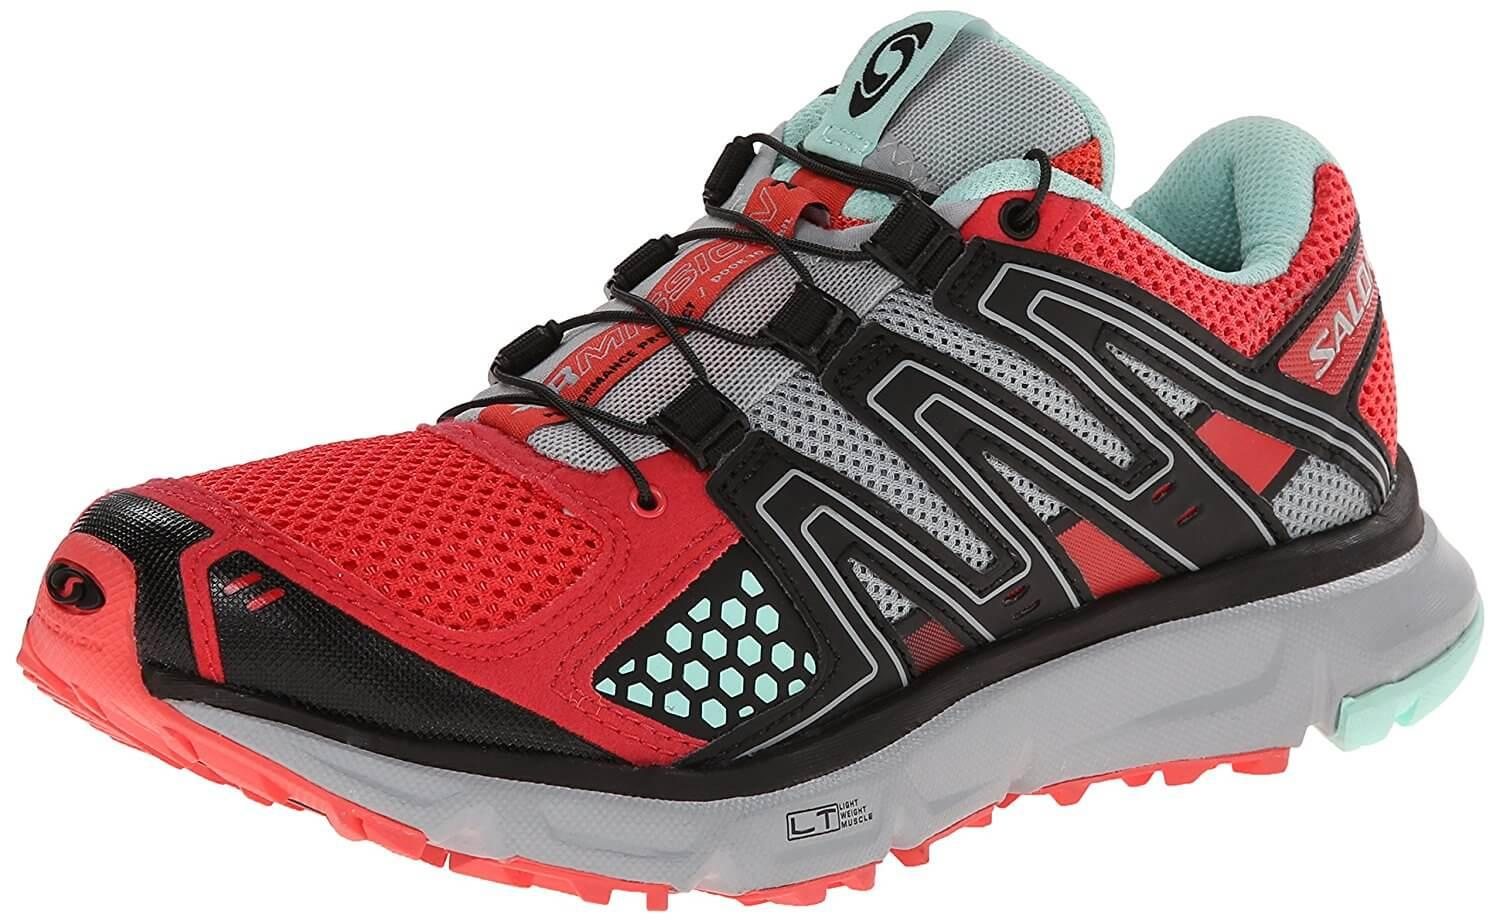 A three quarter view of the Salomon XR Mission trail running shoe